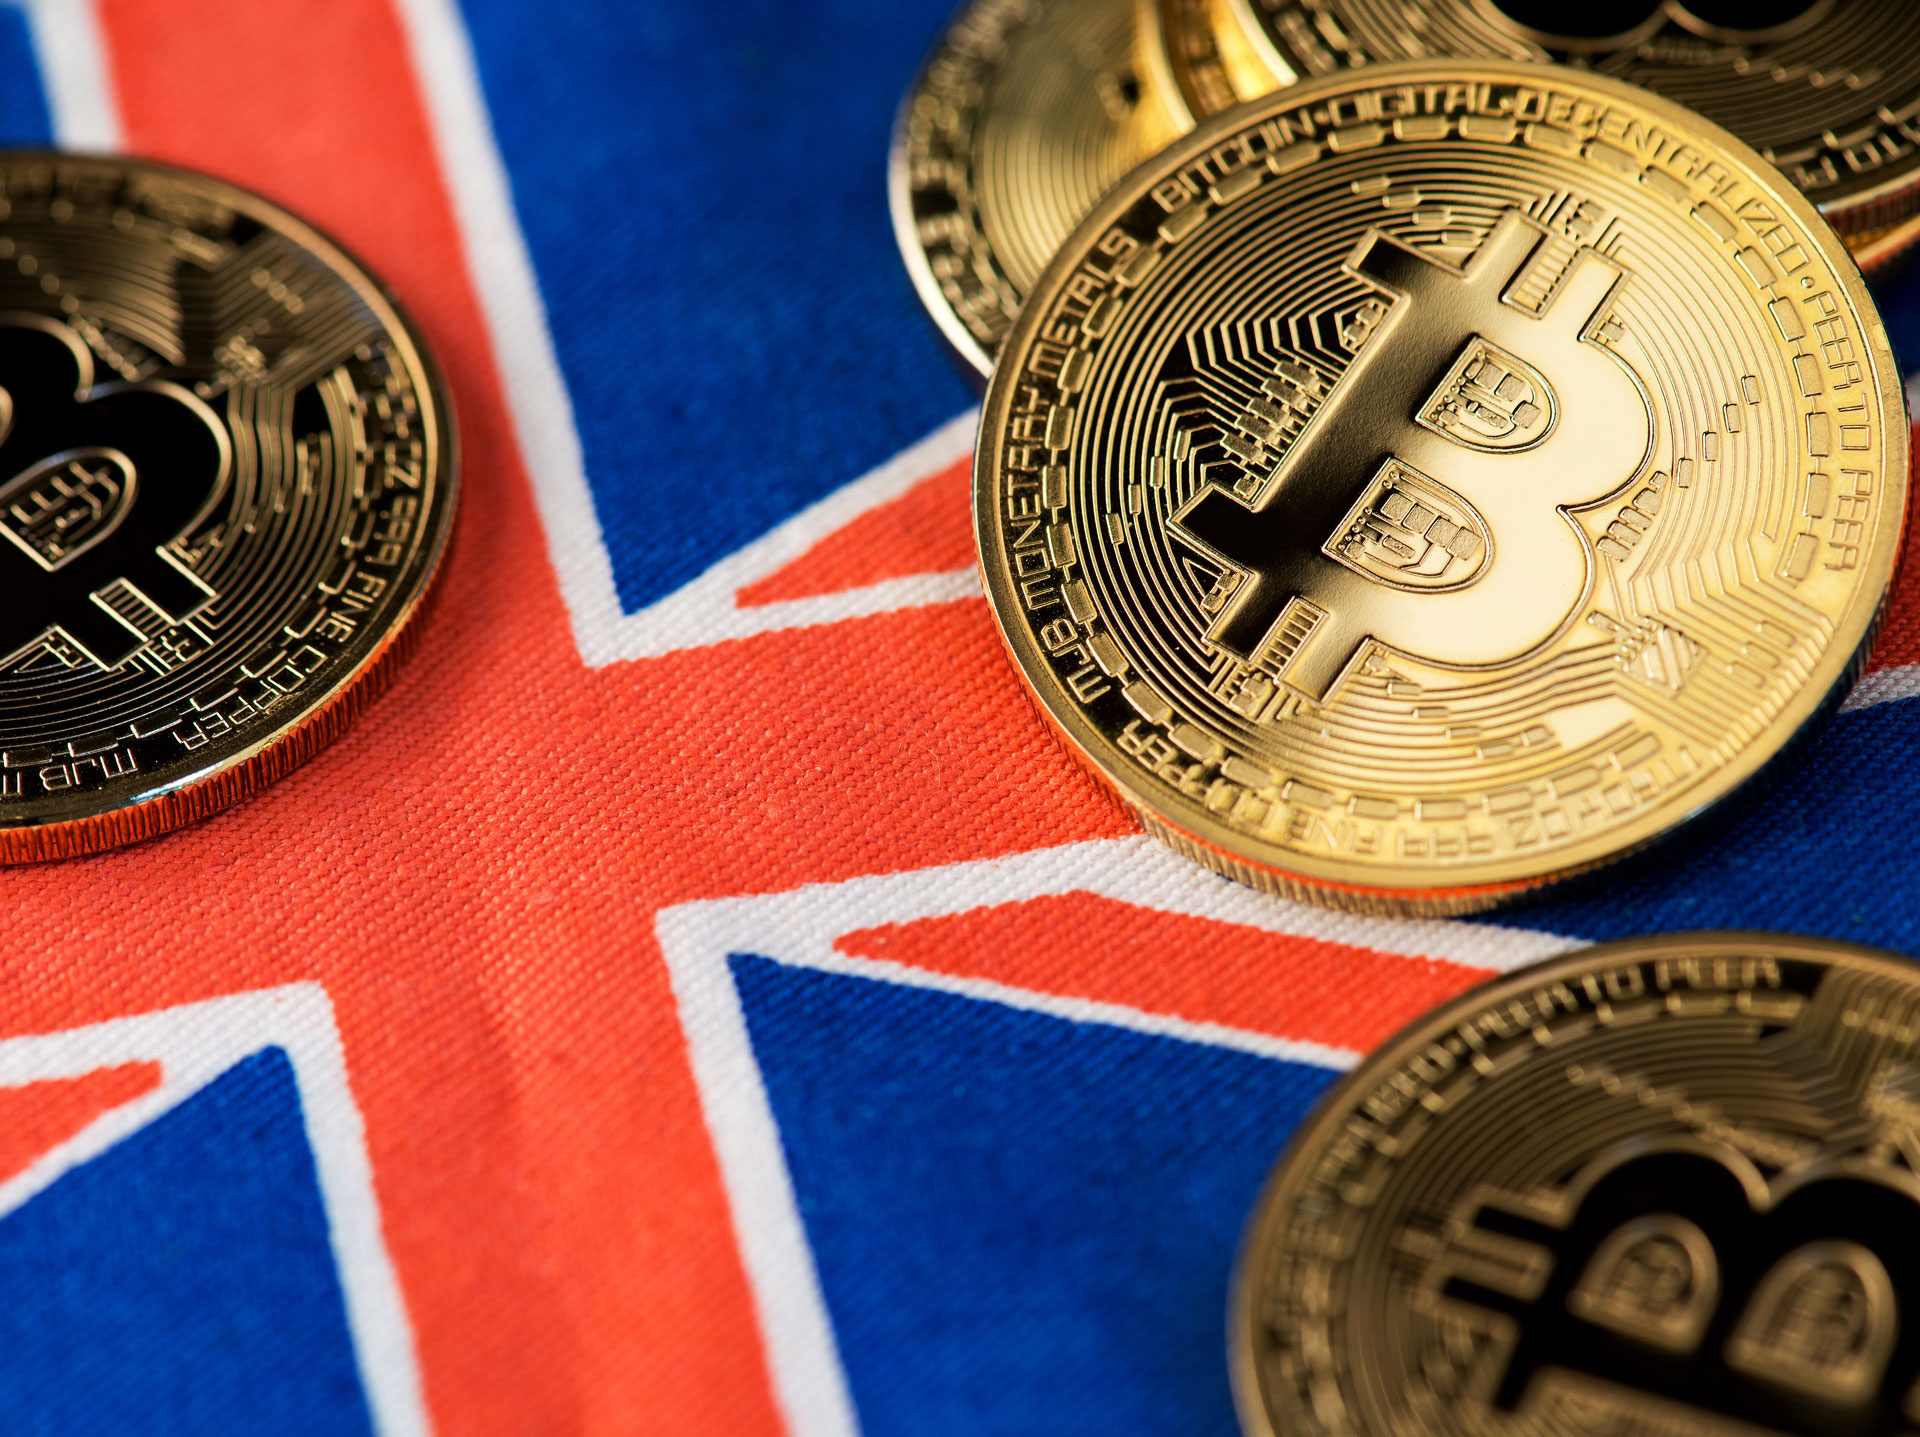 Cryptocurrencies key to post-Brexit economy: deVere CEO